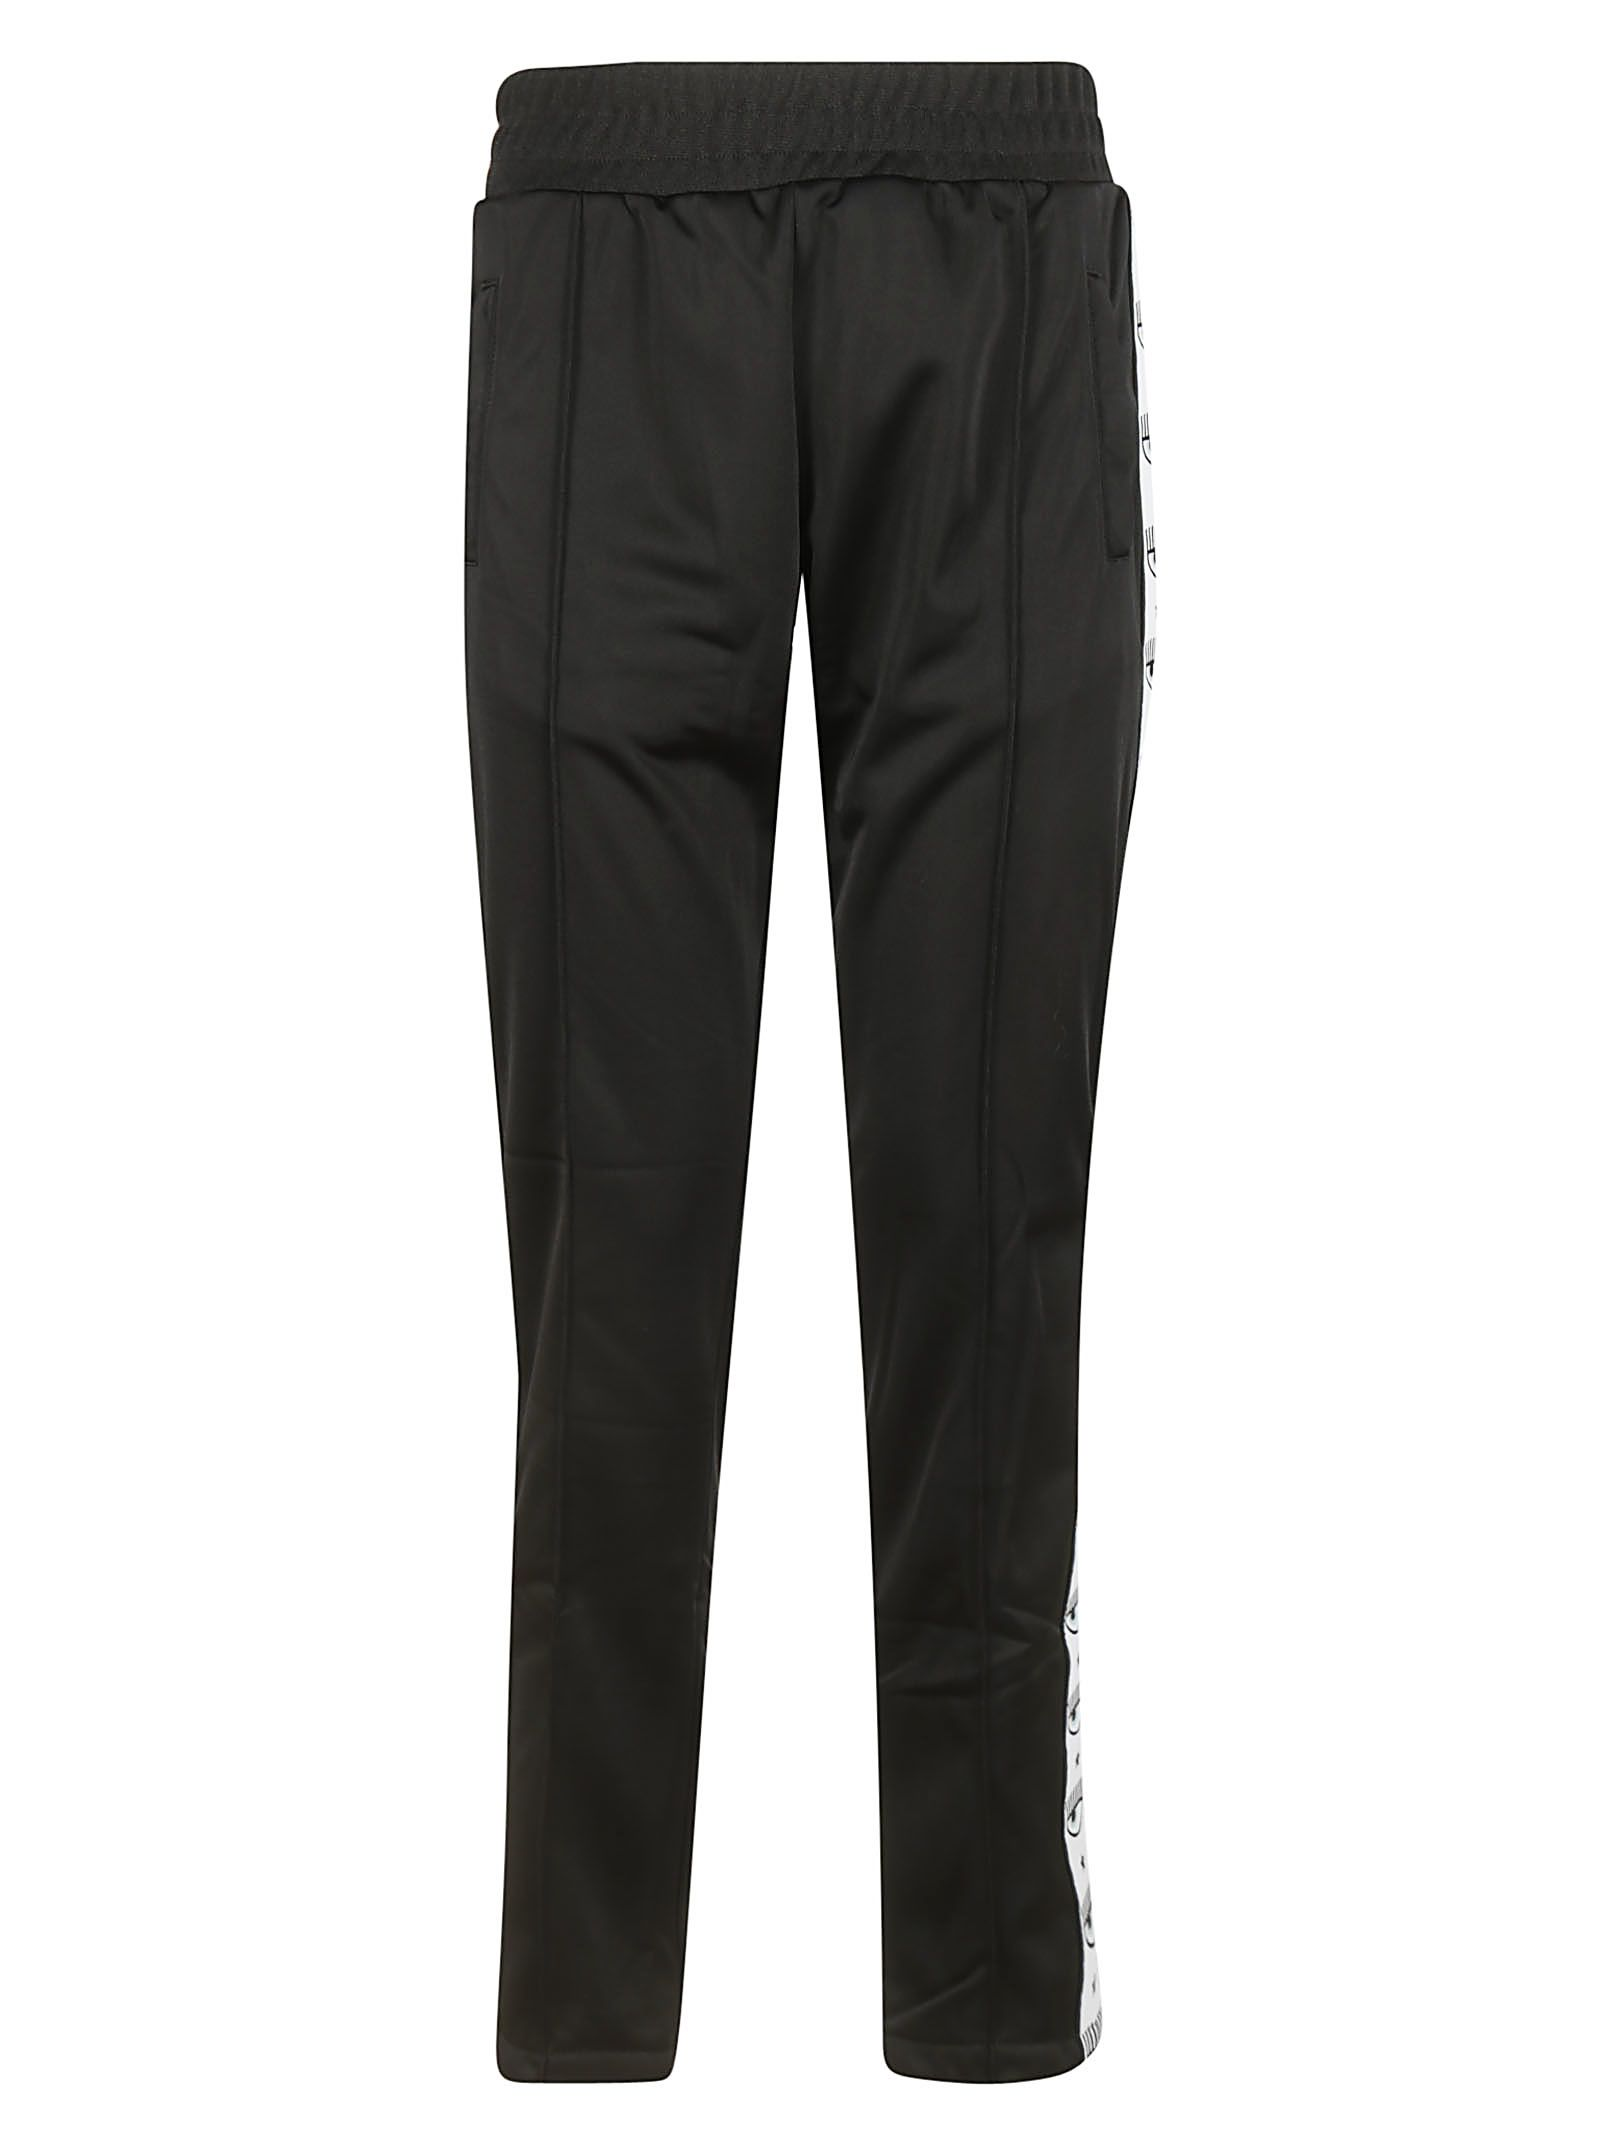 BLINKING EYES TRACK PANTS from Italist.com